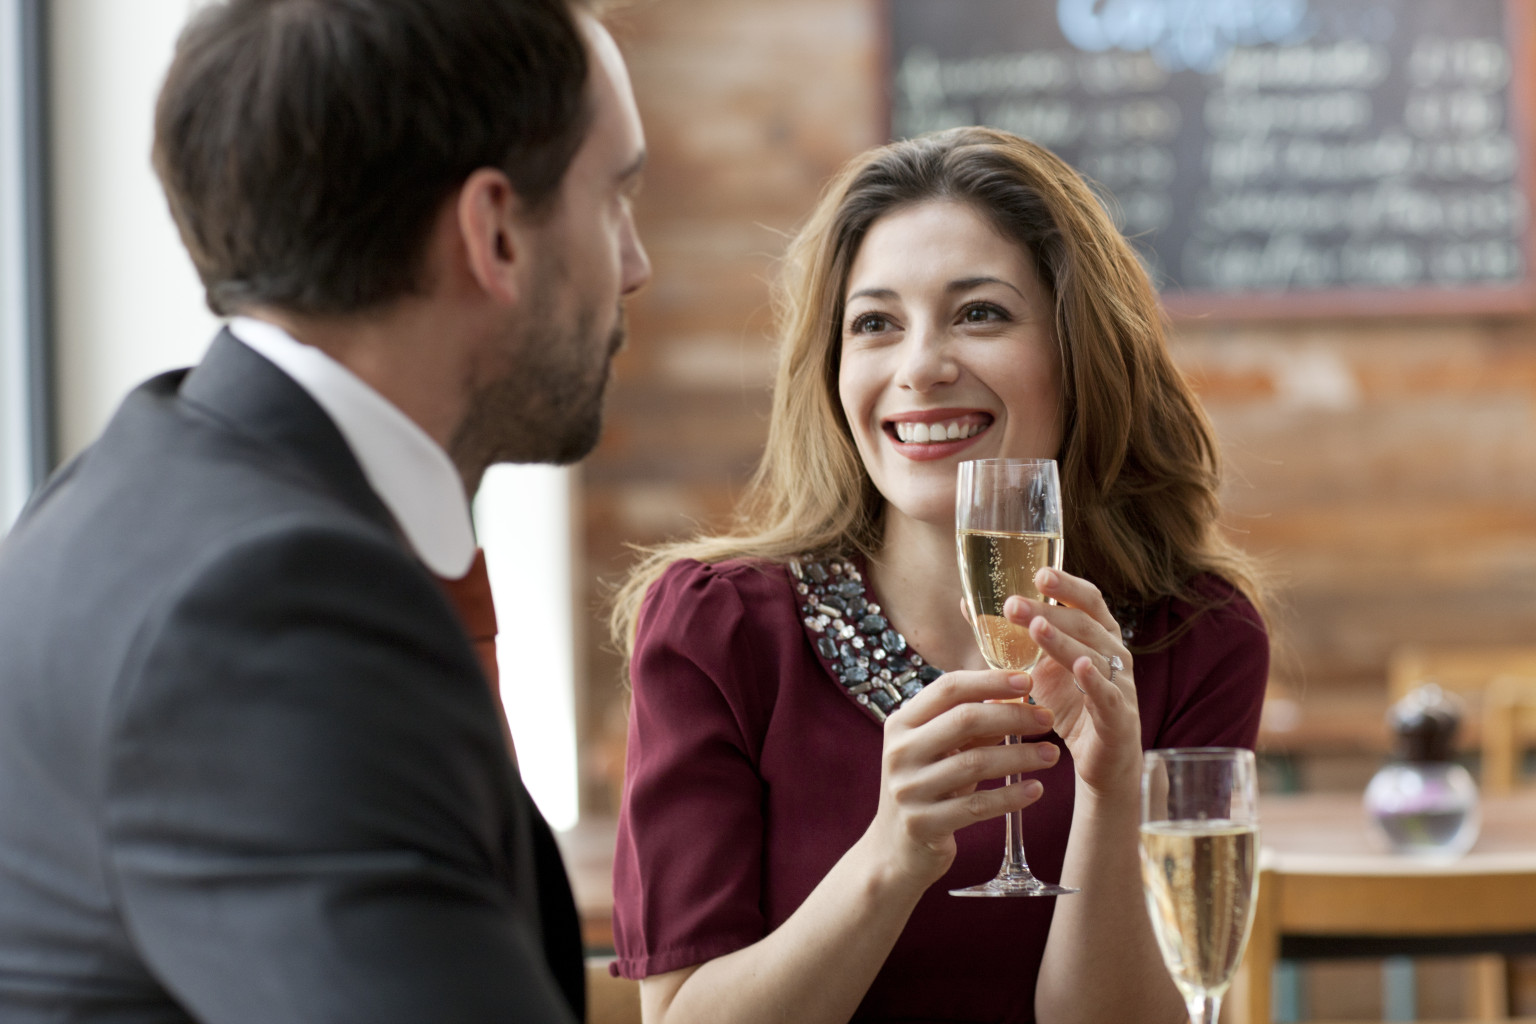 Make First Impressions While Dating with Women